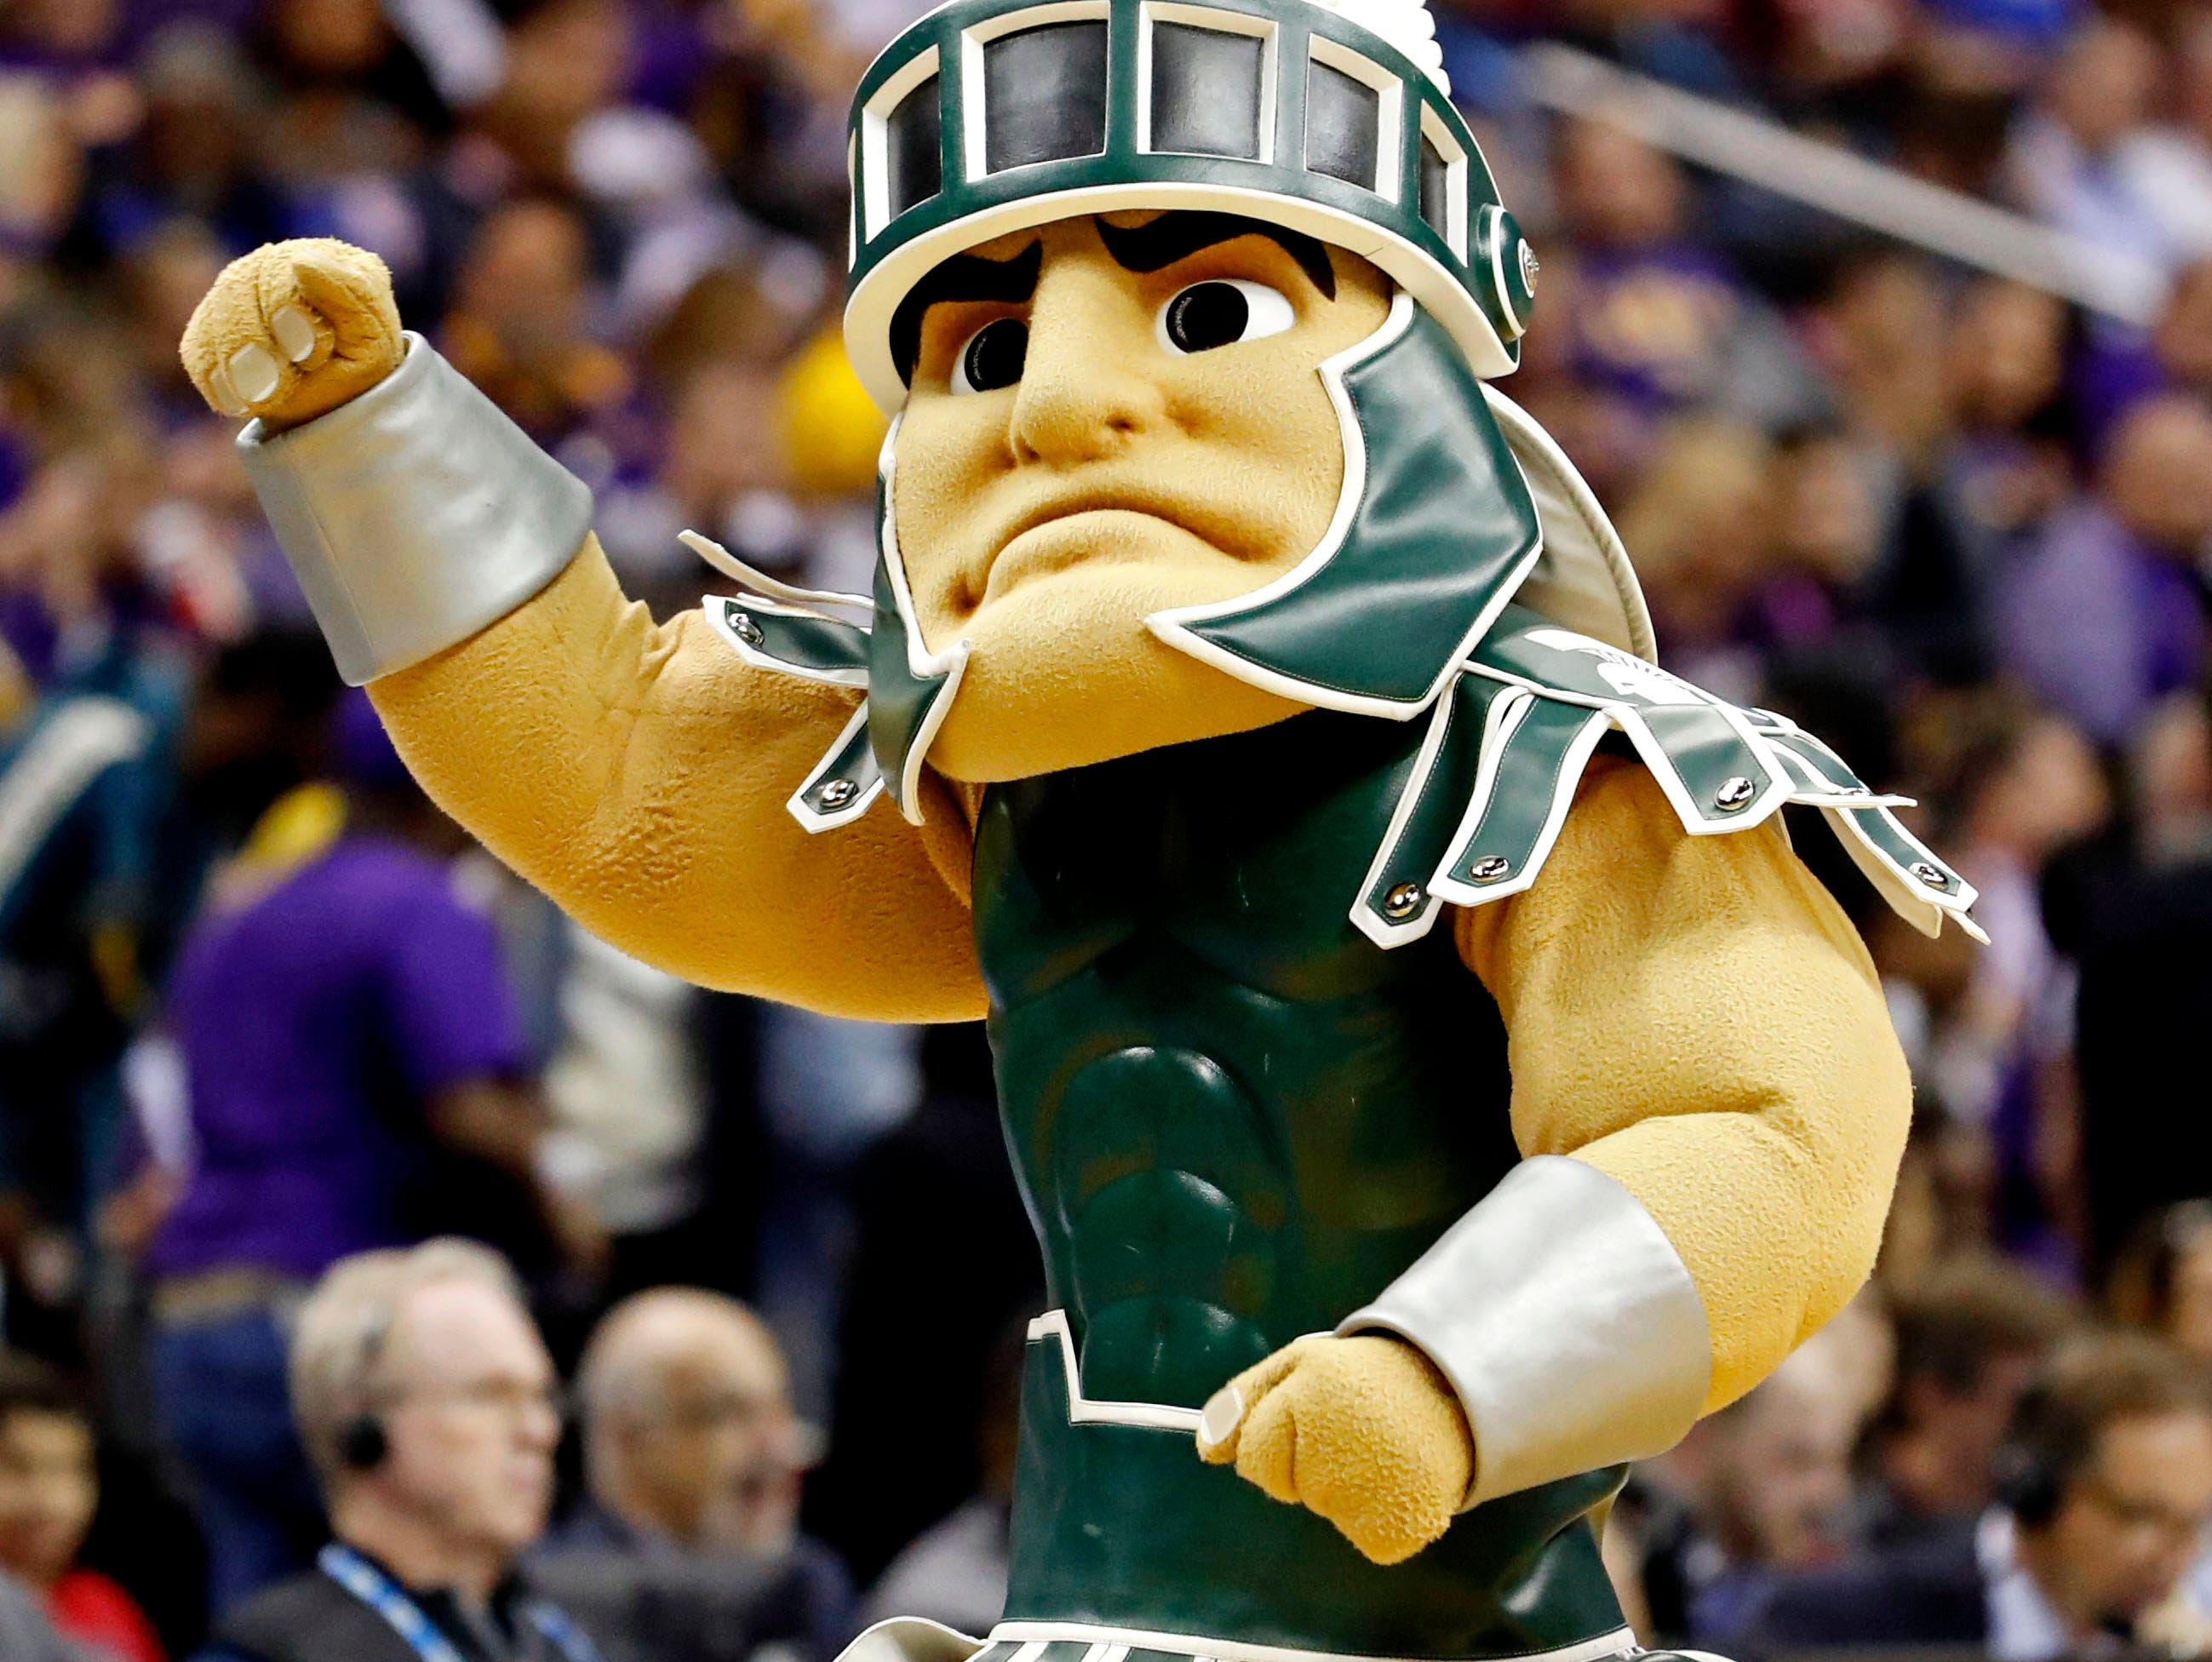 Sweet 16: The Michigan State Spartans mascot performs on the court during the first half against the LSU Tigers.